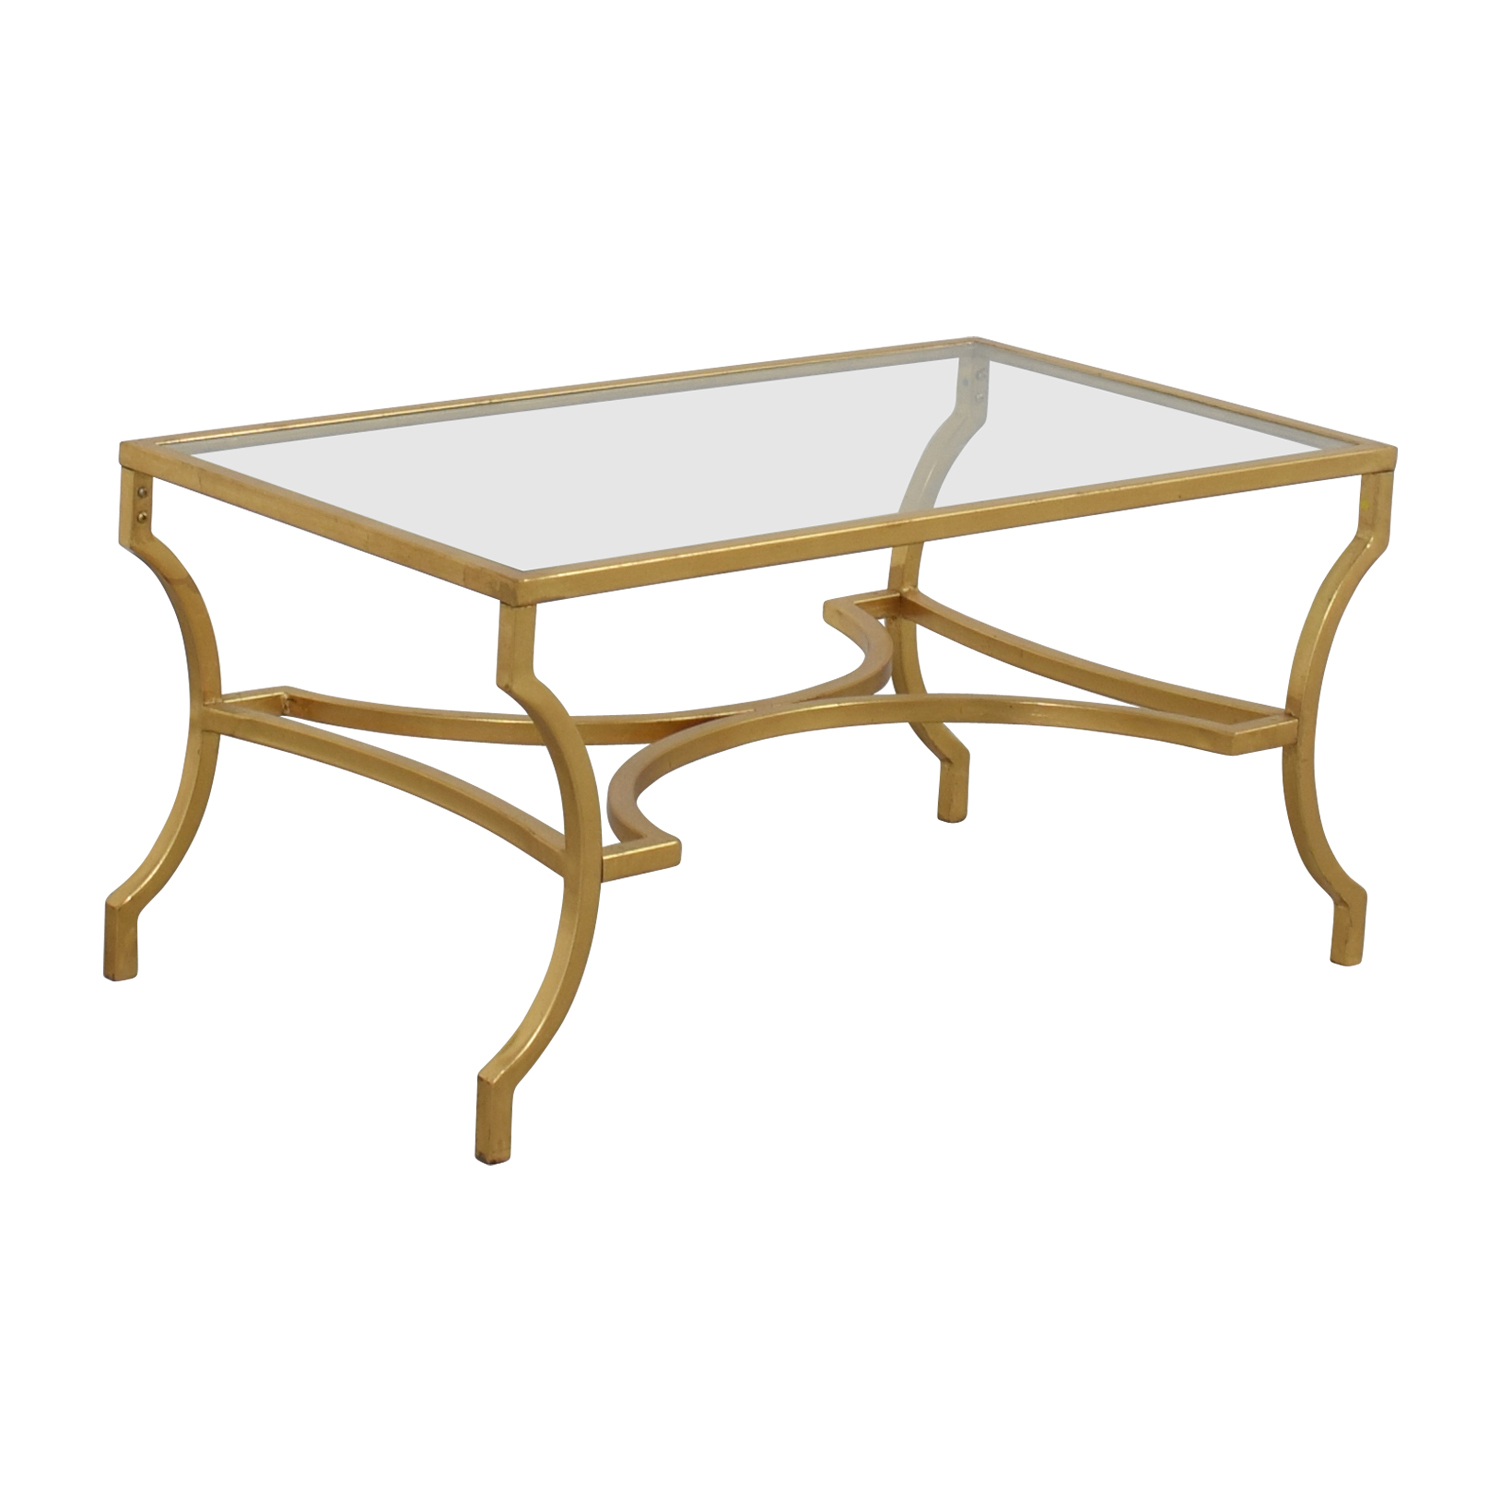 80 Off Raymour And Flanigan Raymour And Flanigan Alphonse Coffee Table Tables